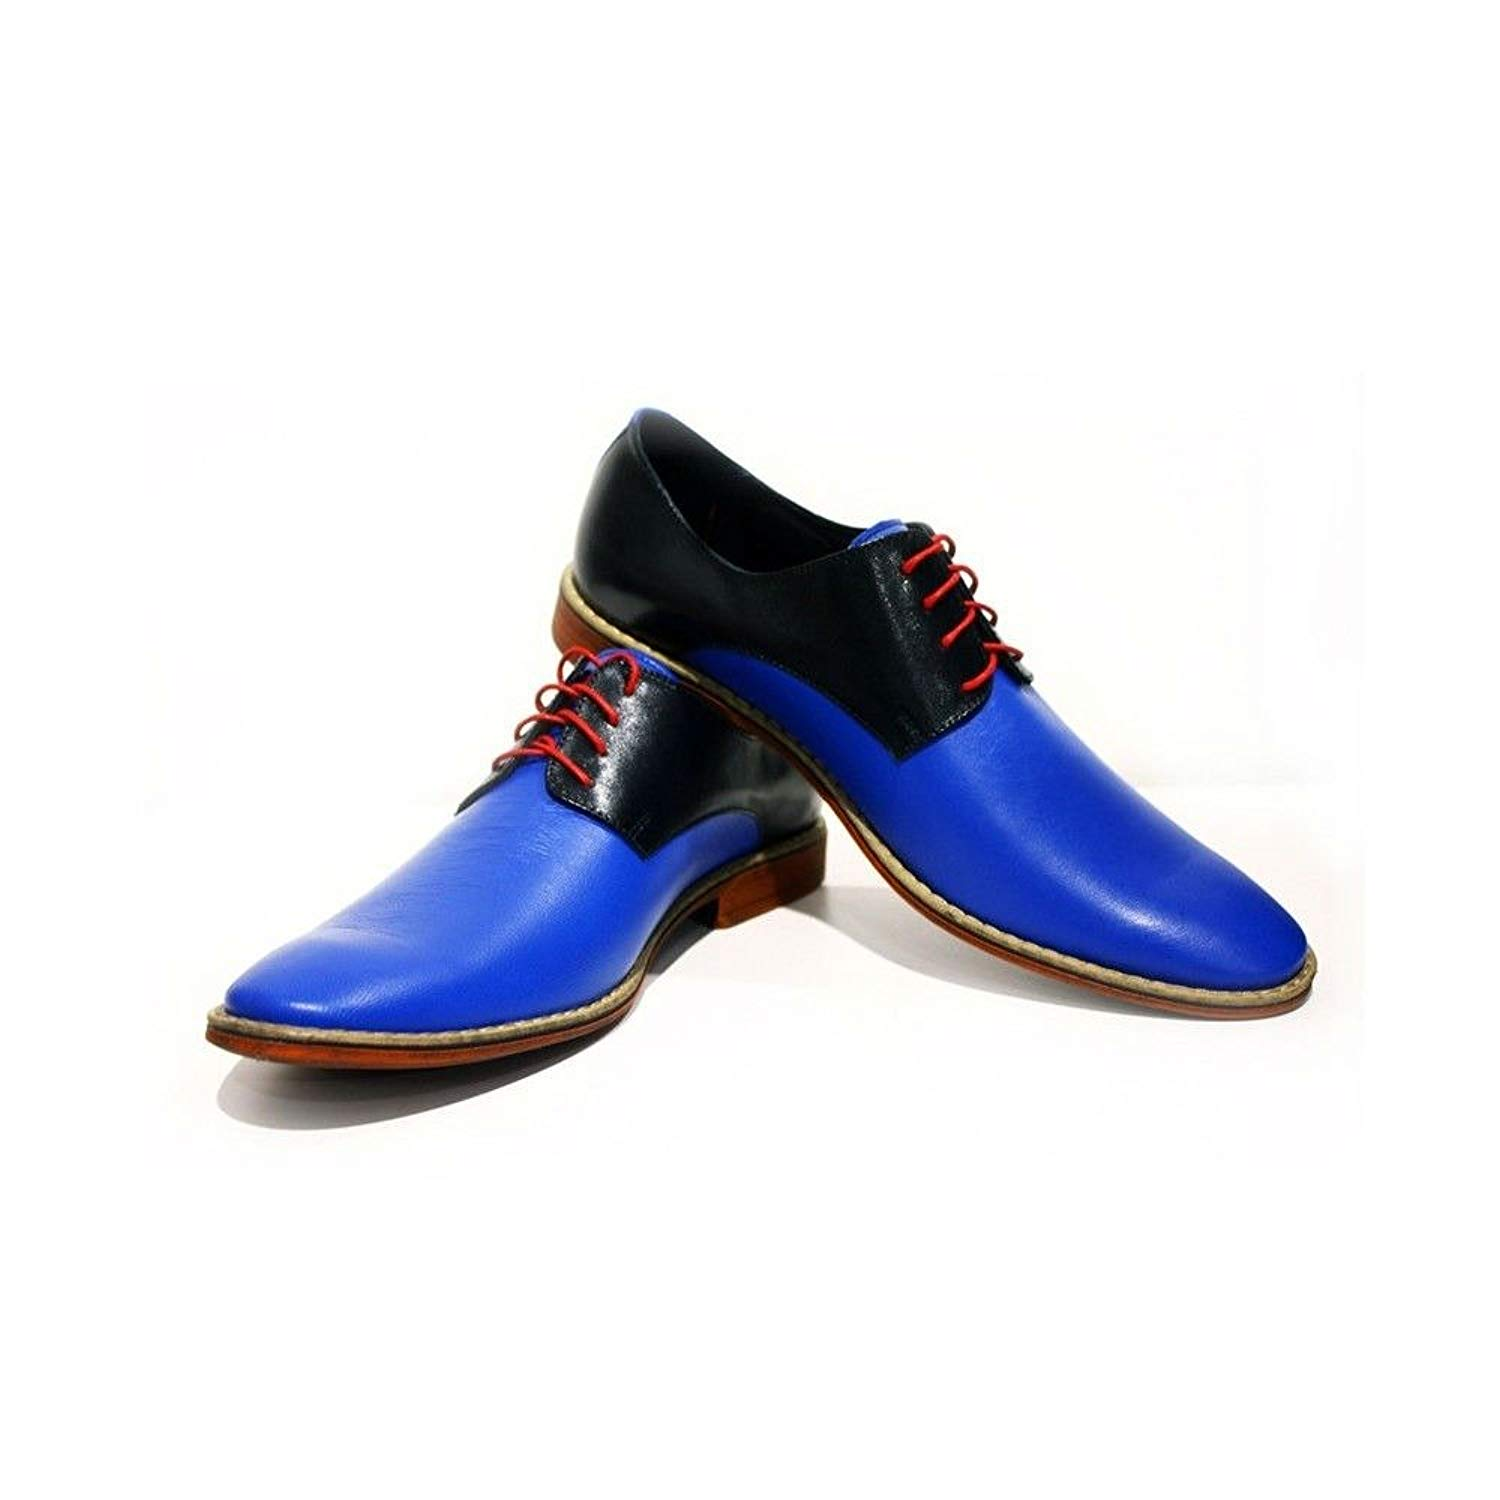 Modello Sassuolo - Handmade Italian Mens Blue Oxfords Dress Shoes - Cowhide Smooth Leather - Lace-up